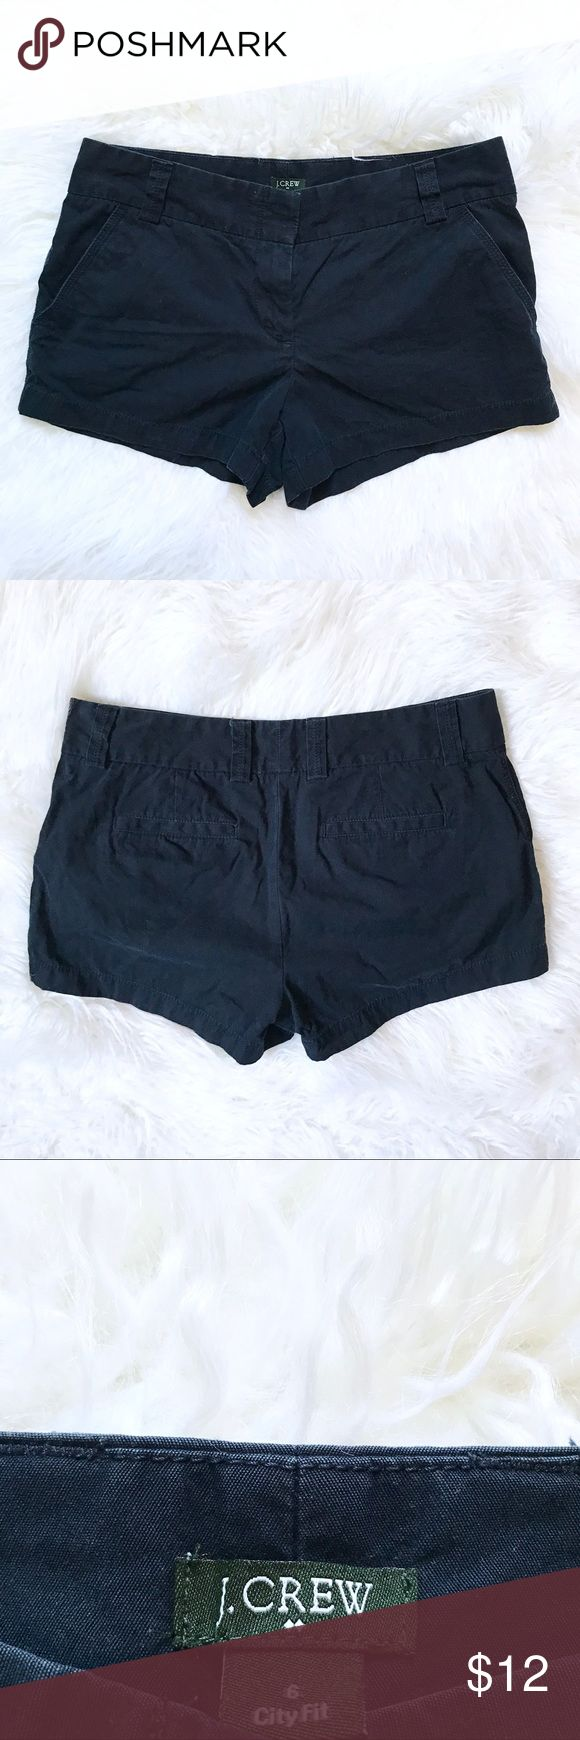 "J Crew Shorts Women's Navy Blue City Fit Size 6 Women's J.crew navy blue city fit shorts, excellent used condition. Great shorts for work or casual lounging. Not super short, but considered ""short shorts"". If you have any questions comment(:       Tommy Hilfiger . Ralph Lauren . Banana Republic . Lululemon . Vineyard Vines . Southern Tide . Forever 21 . H&M J. Crew Shorts"